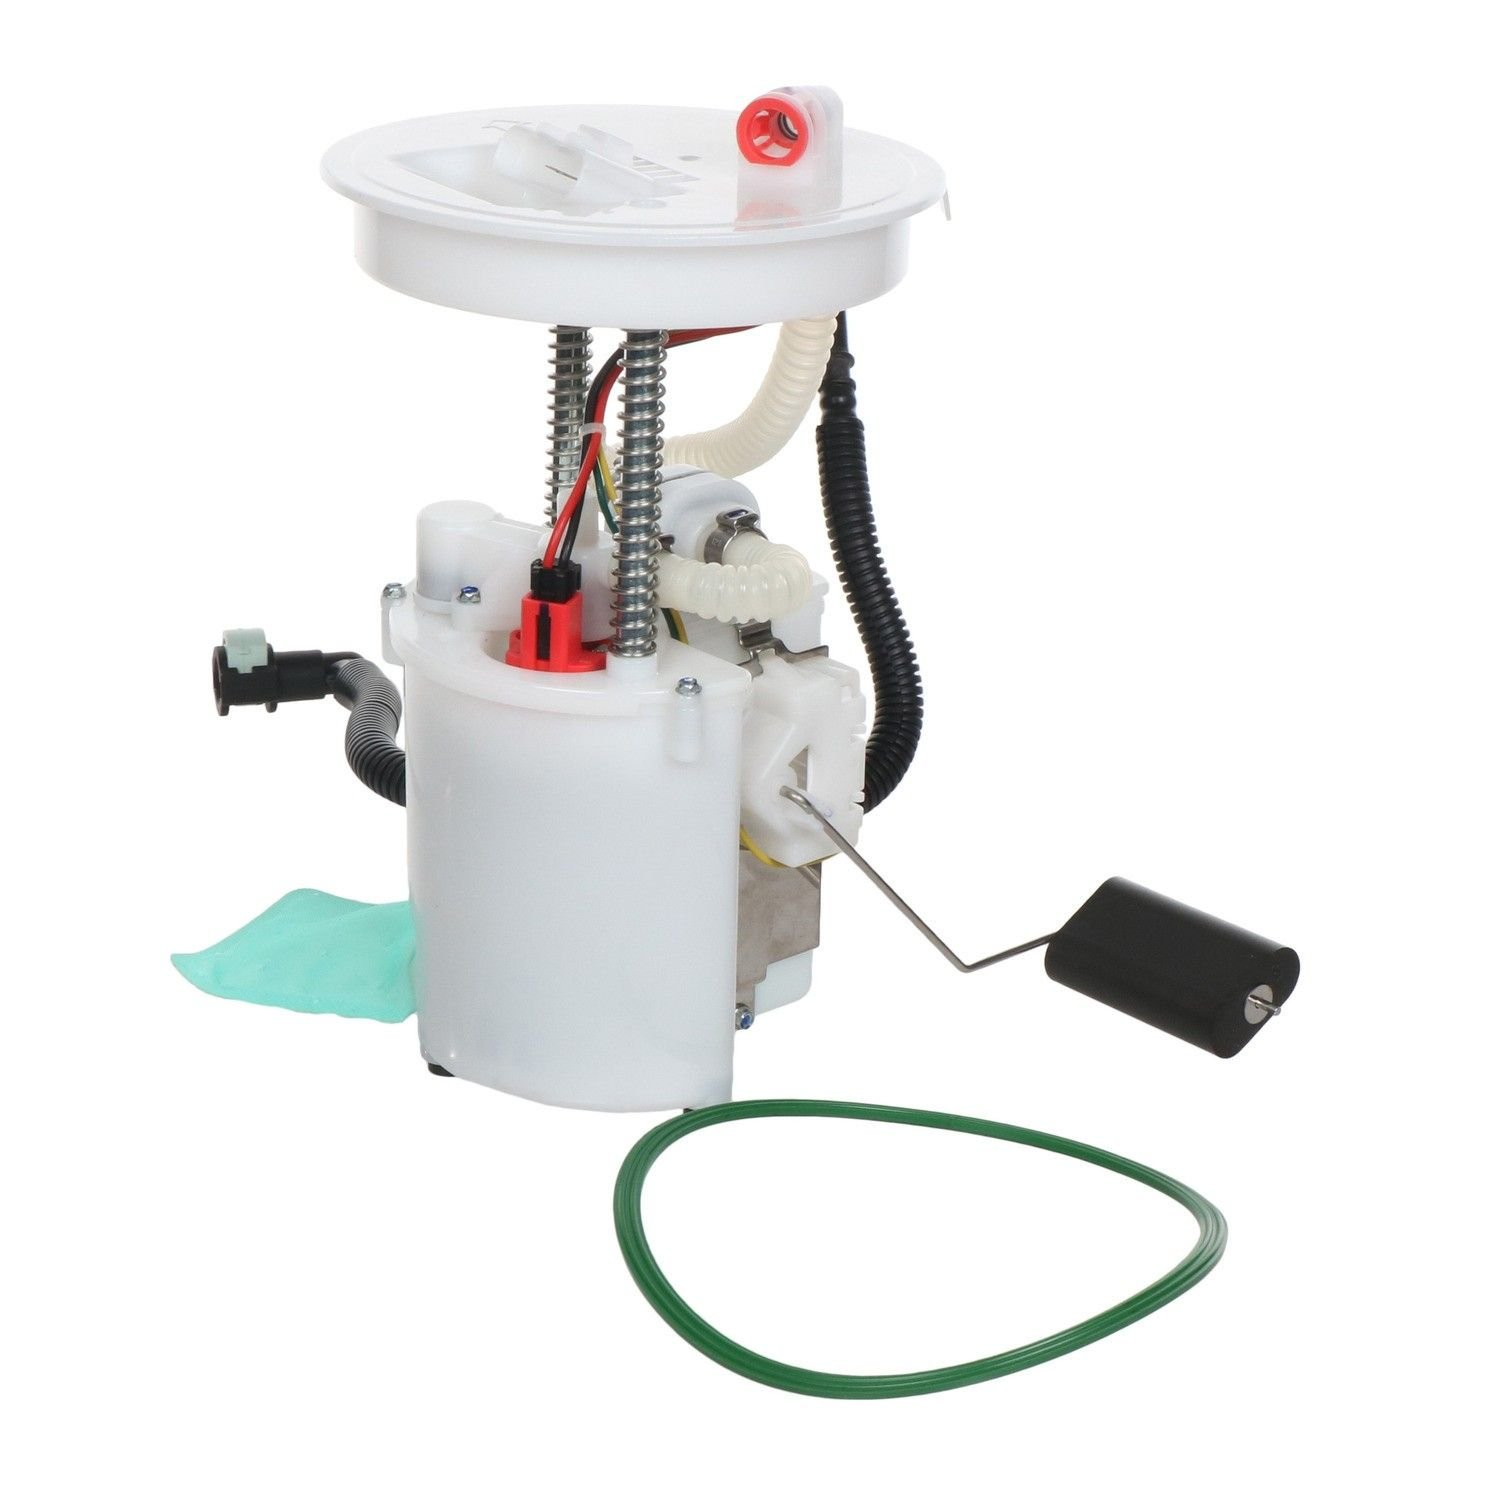 Ford Focus Fuel Pump Module Assembly Replacement Airtex